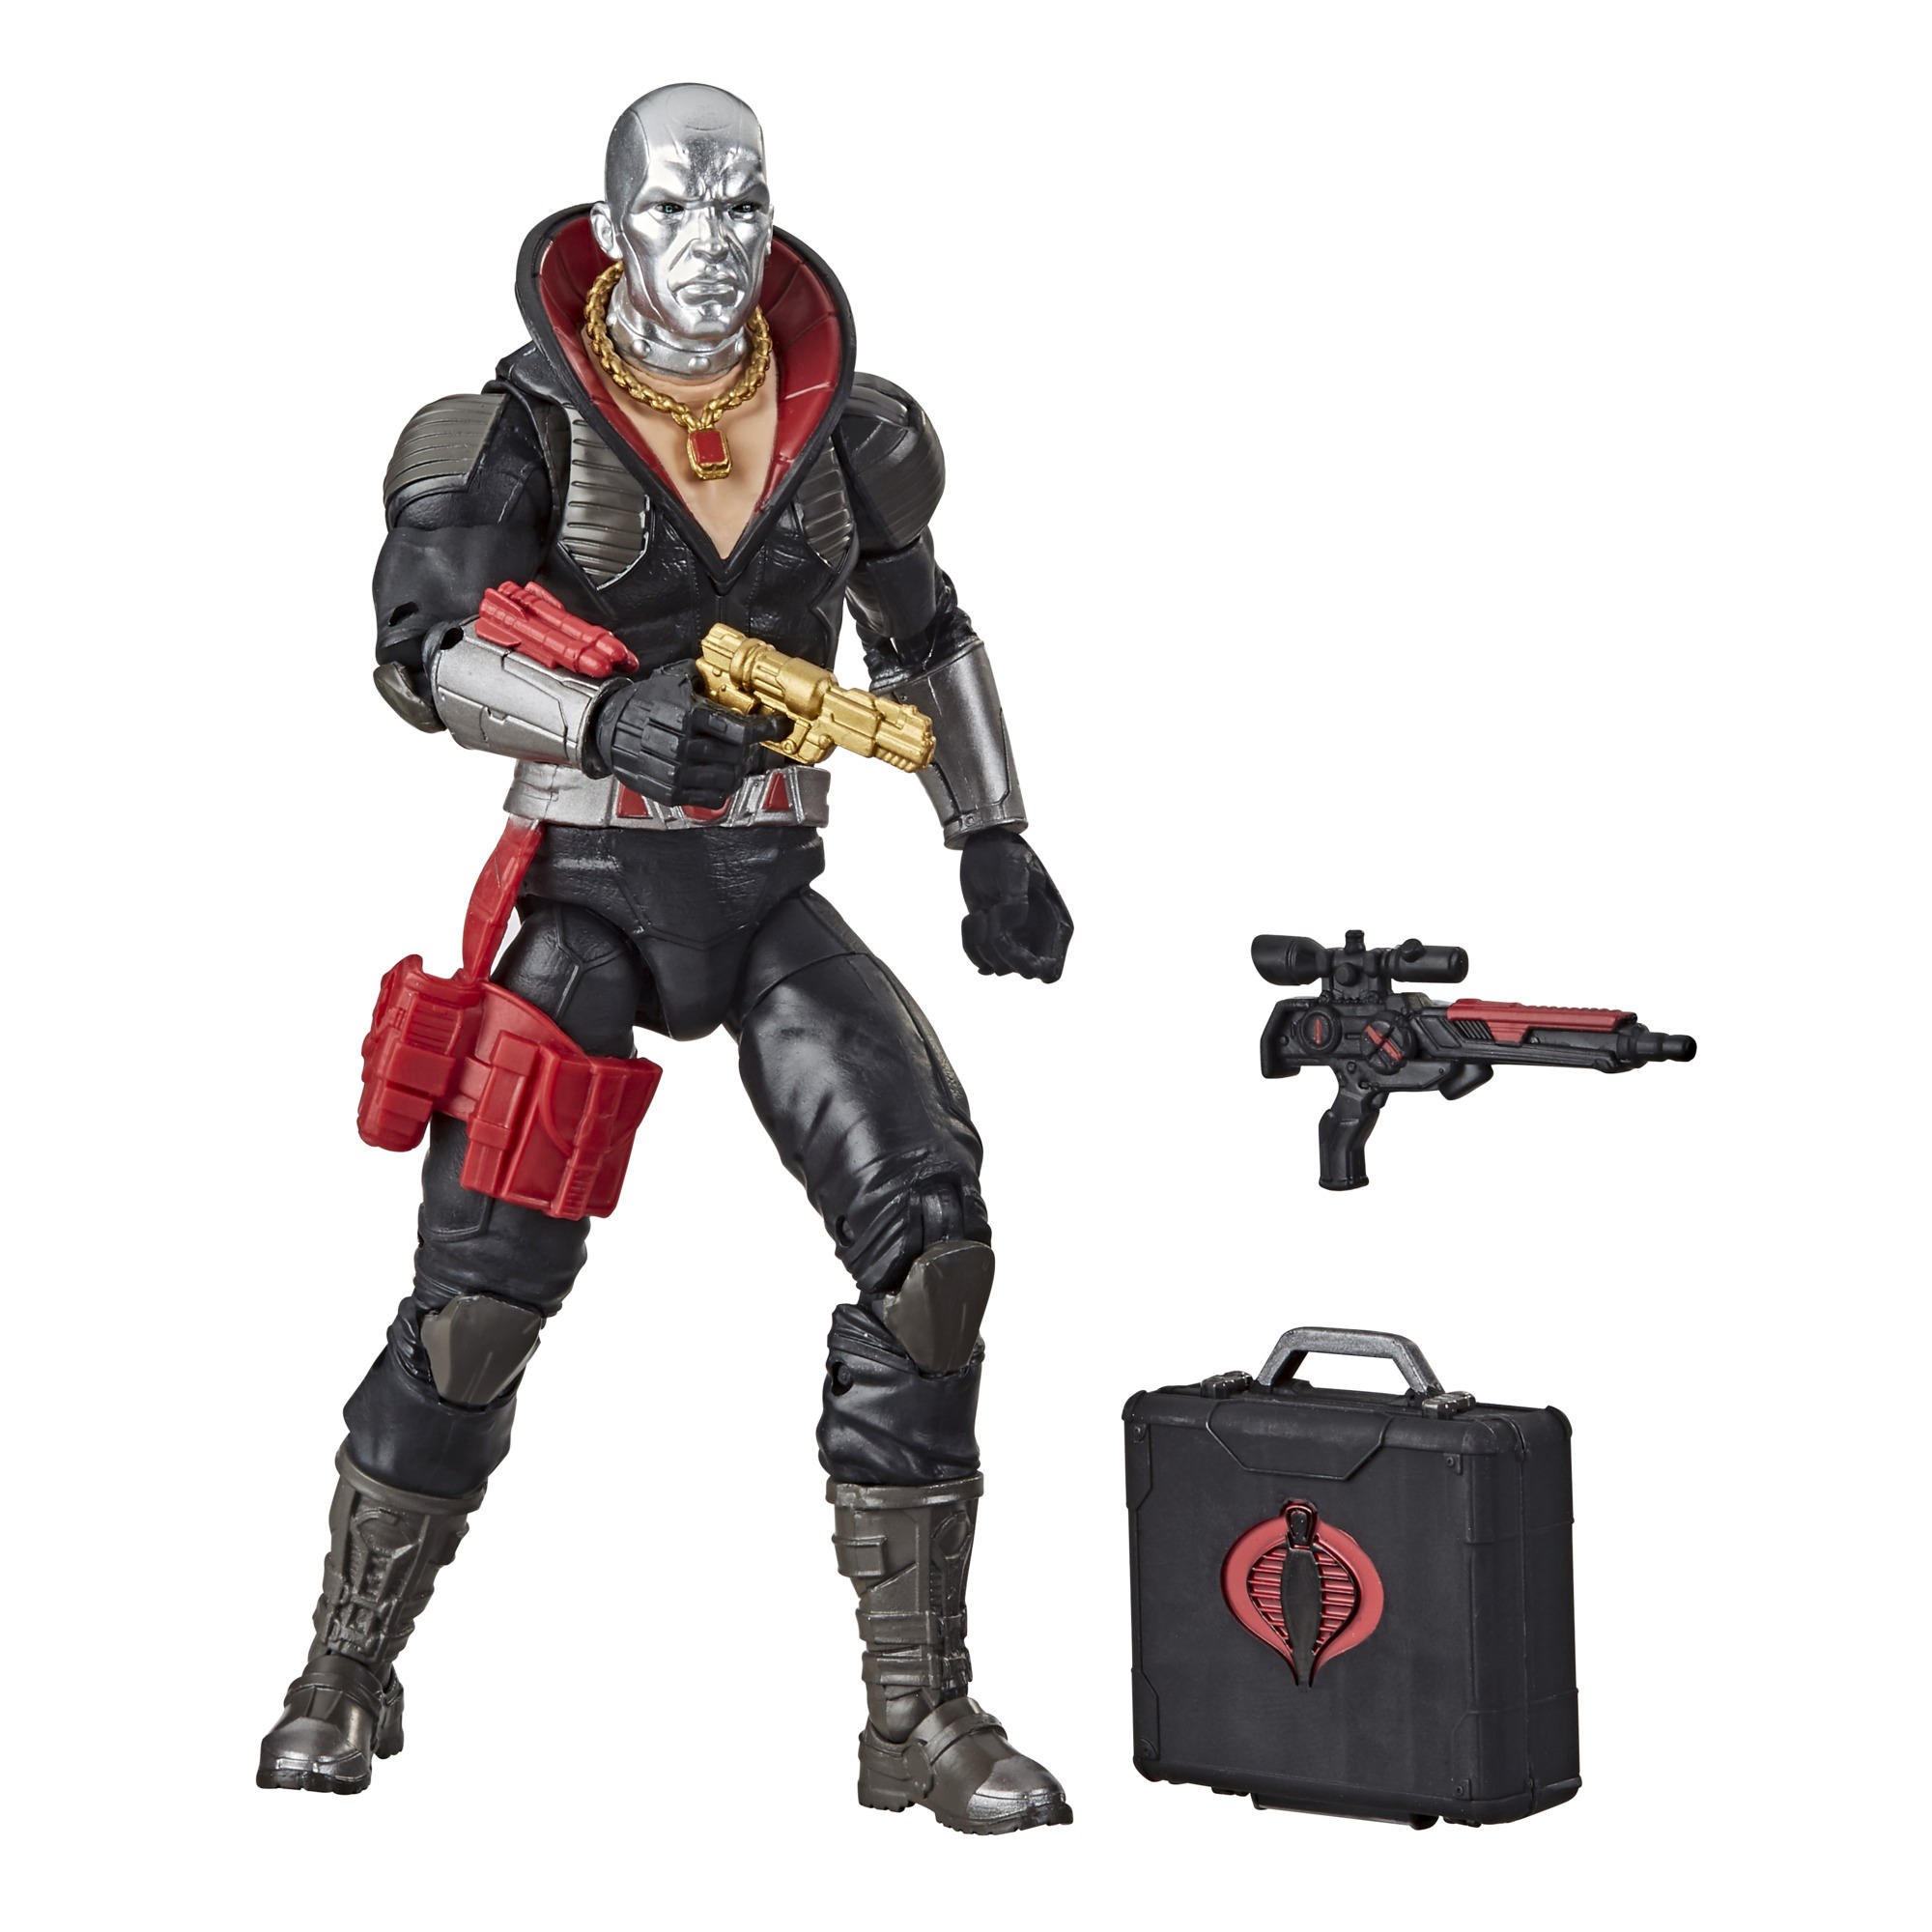 G.I. Joe Classified Series - Figura Destro 03 con múltiples accesorios